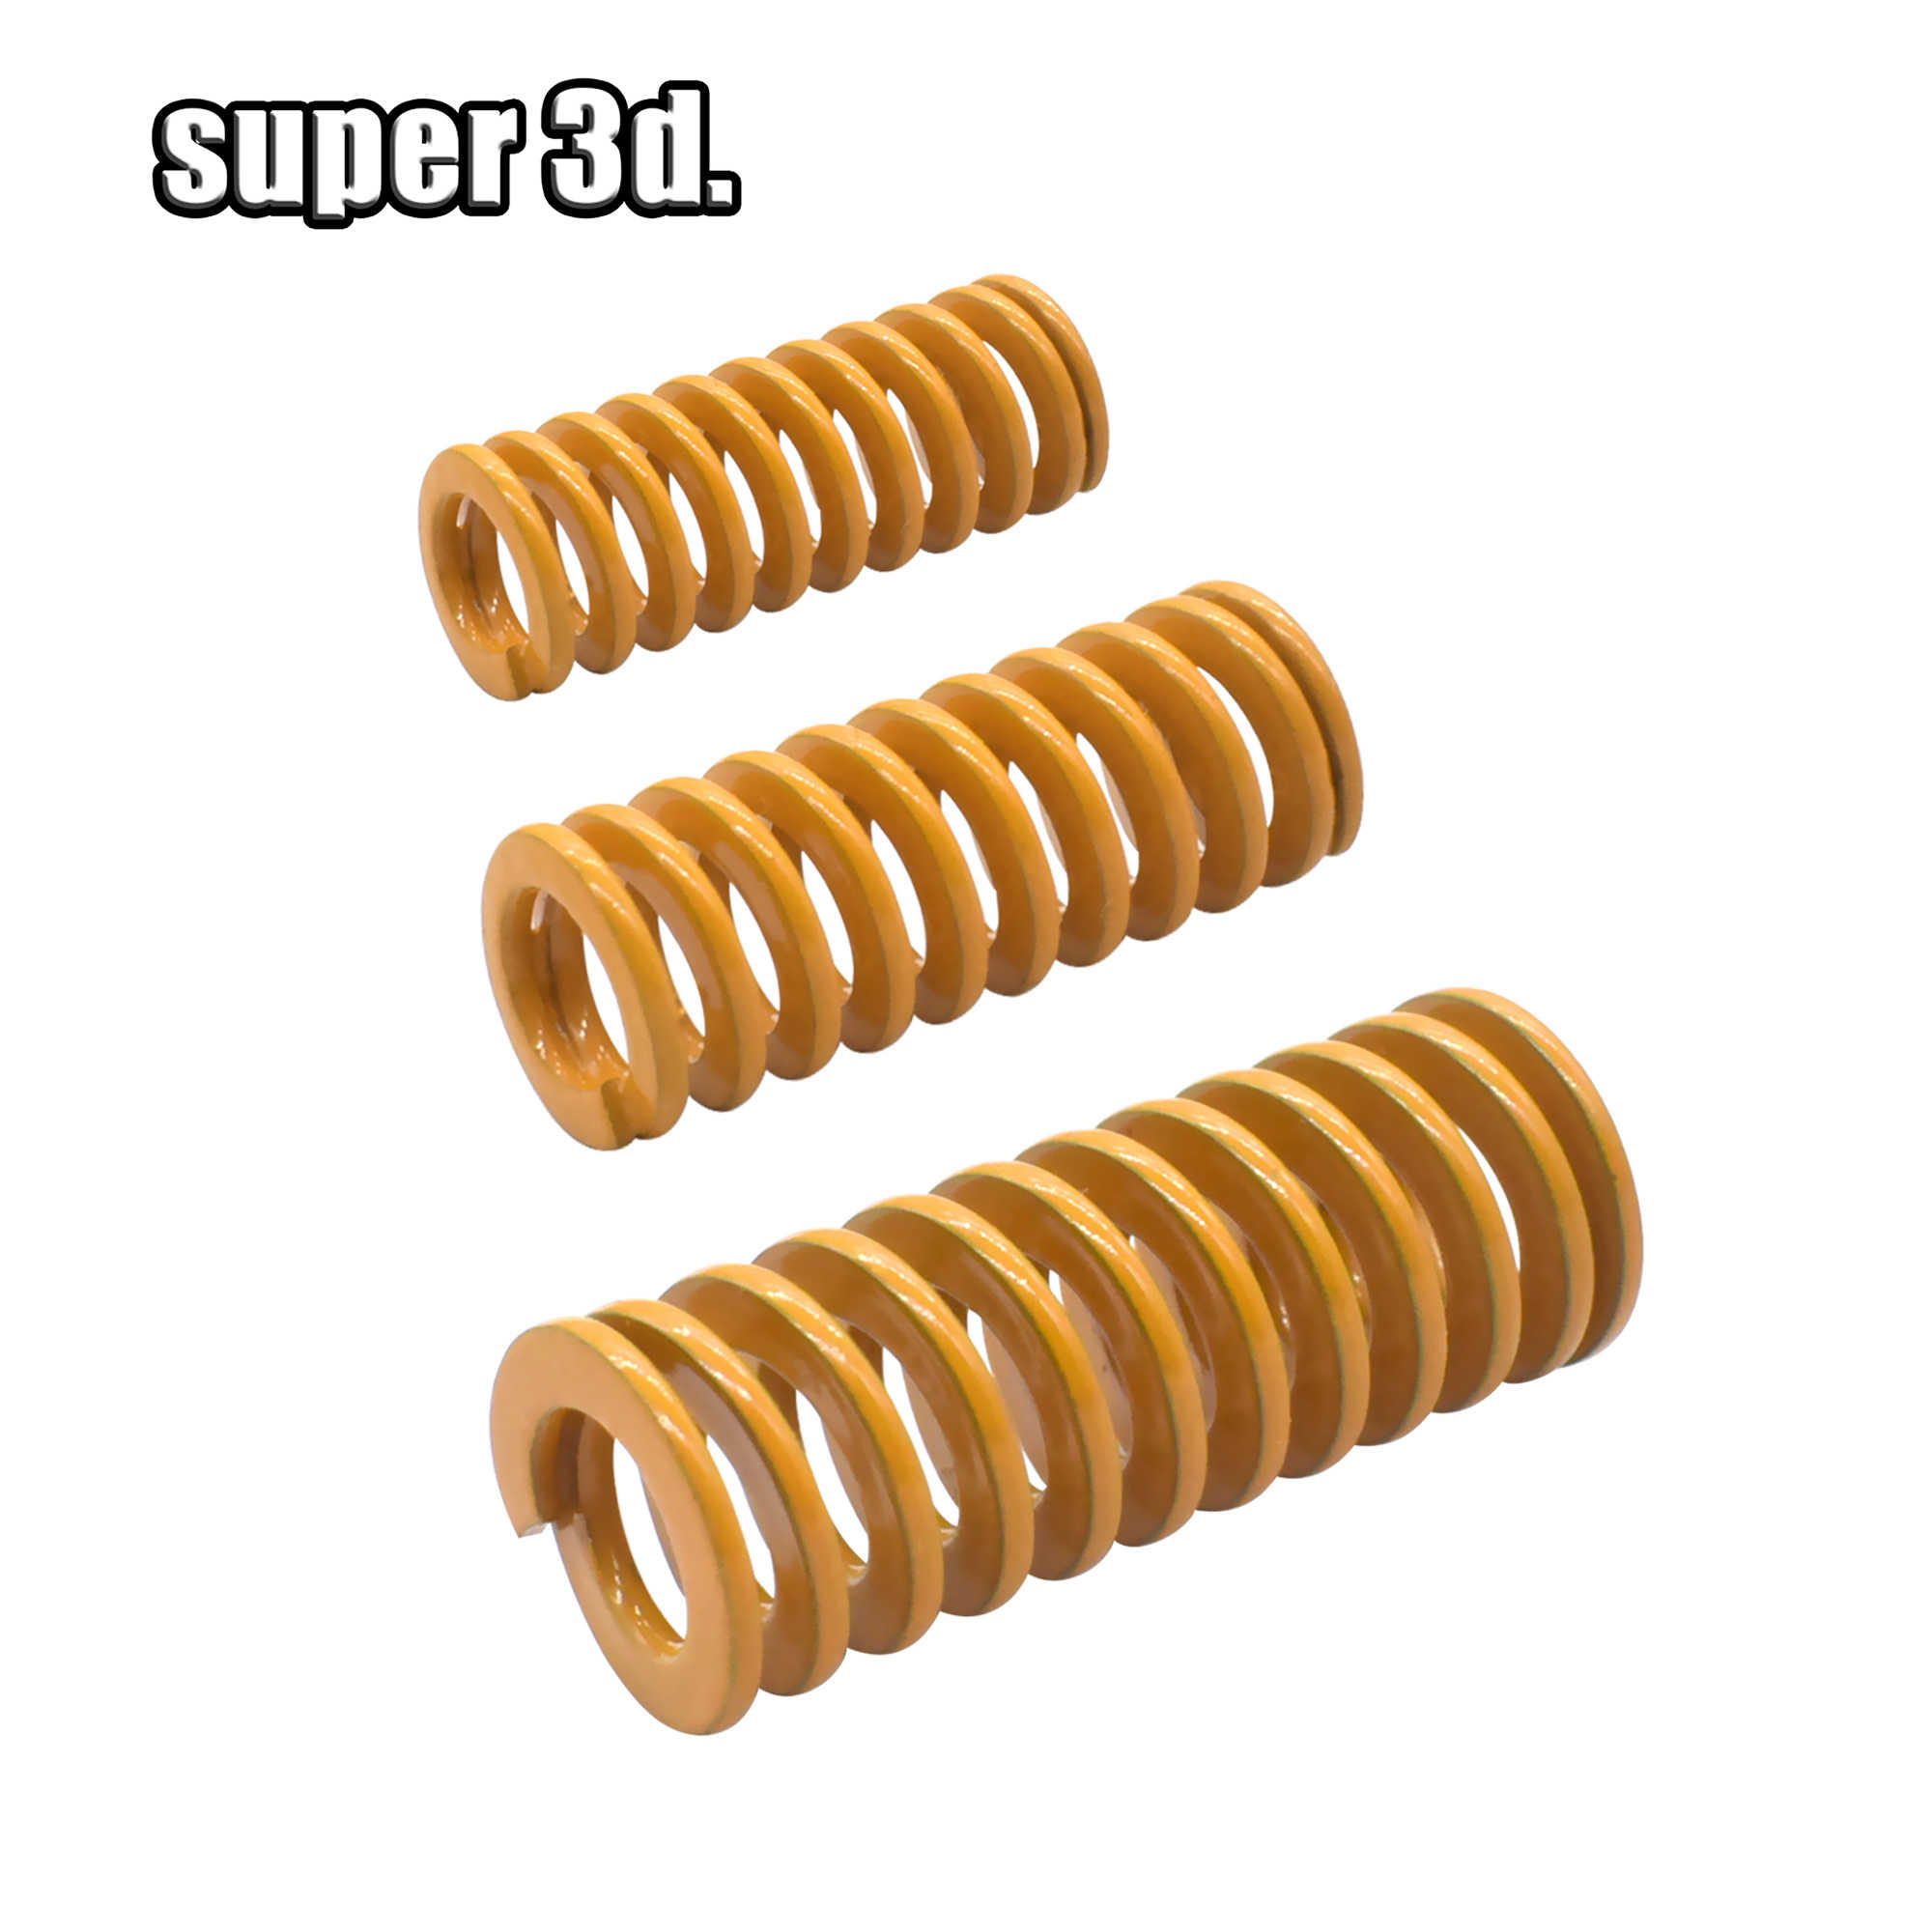 25mm Long Blue Compression Springs 3D Printer Accessories Heatbed Springs Compression Mould Die Springs ONLYKXY 8mm OD 5mm ID Compression Springs